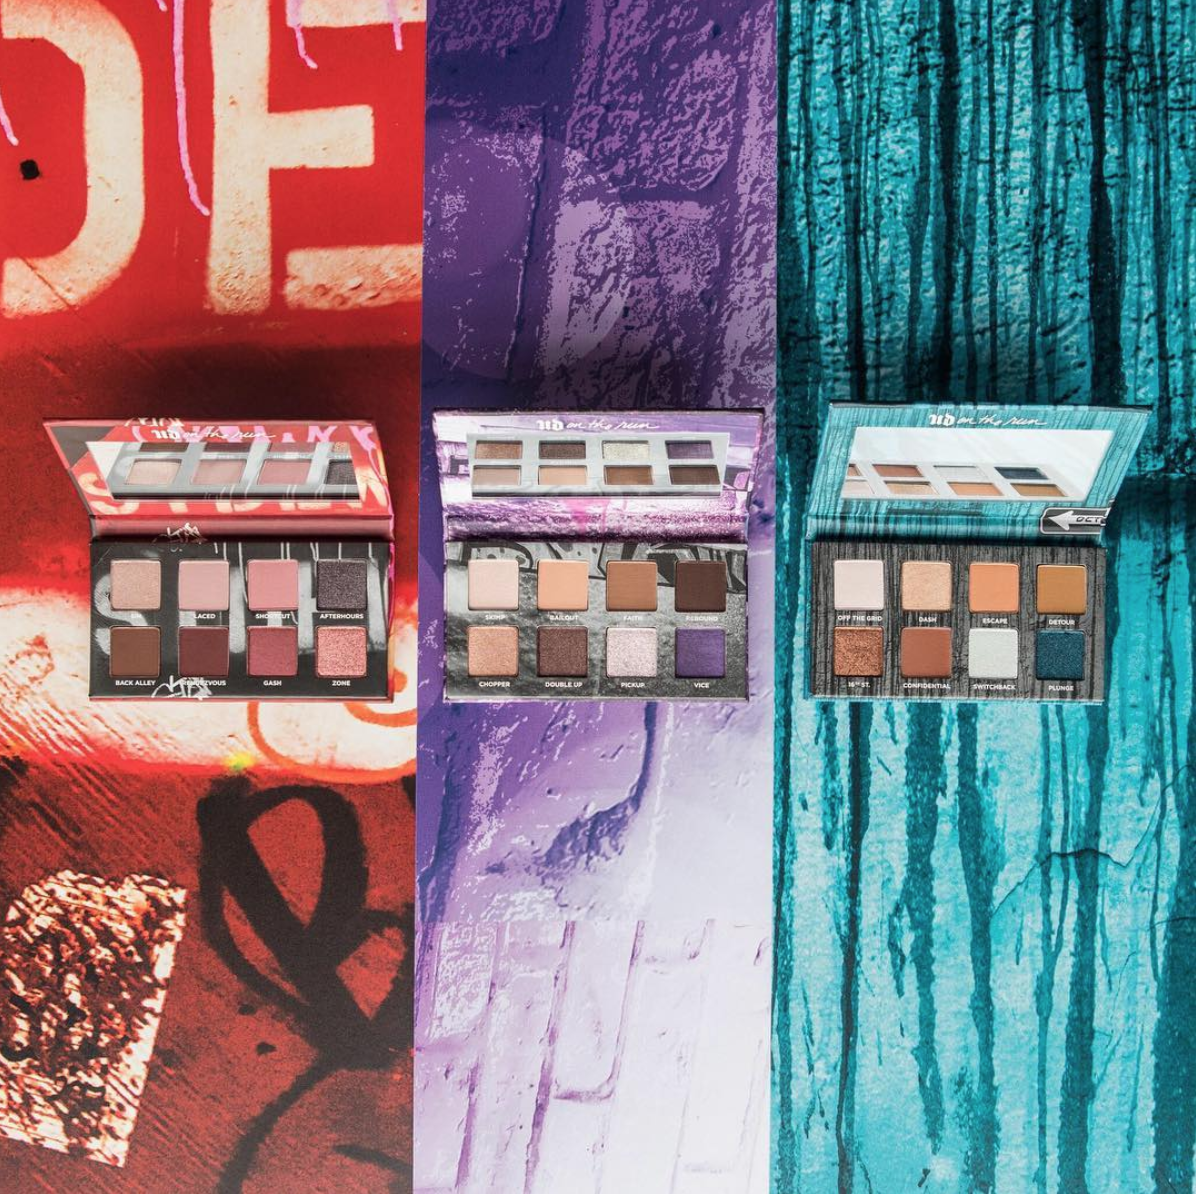 Urban Decay On the Run Collection Eyeshadow Palette Ombretti - Info, prezzo, dove acquistare, data di uscita, review, recensione, opinioni, swatch